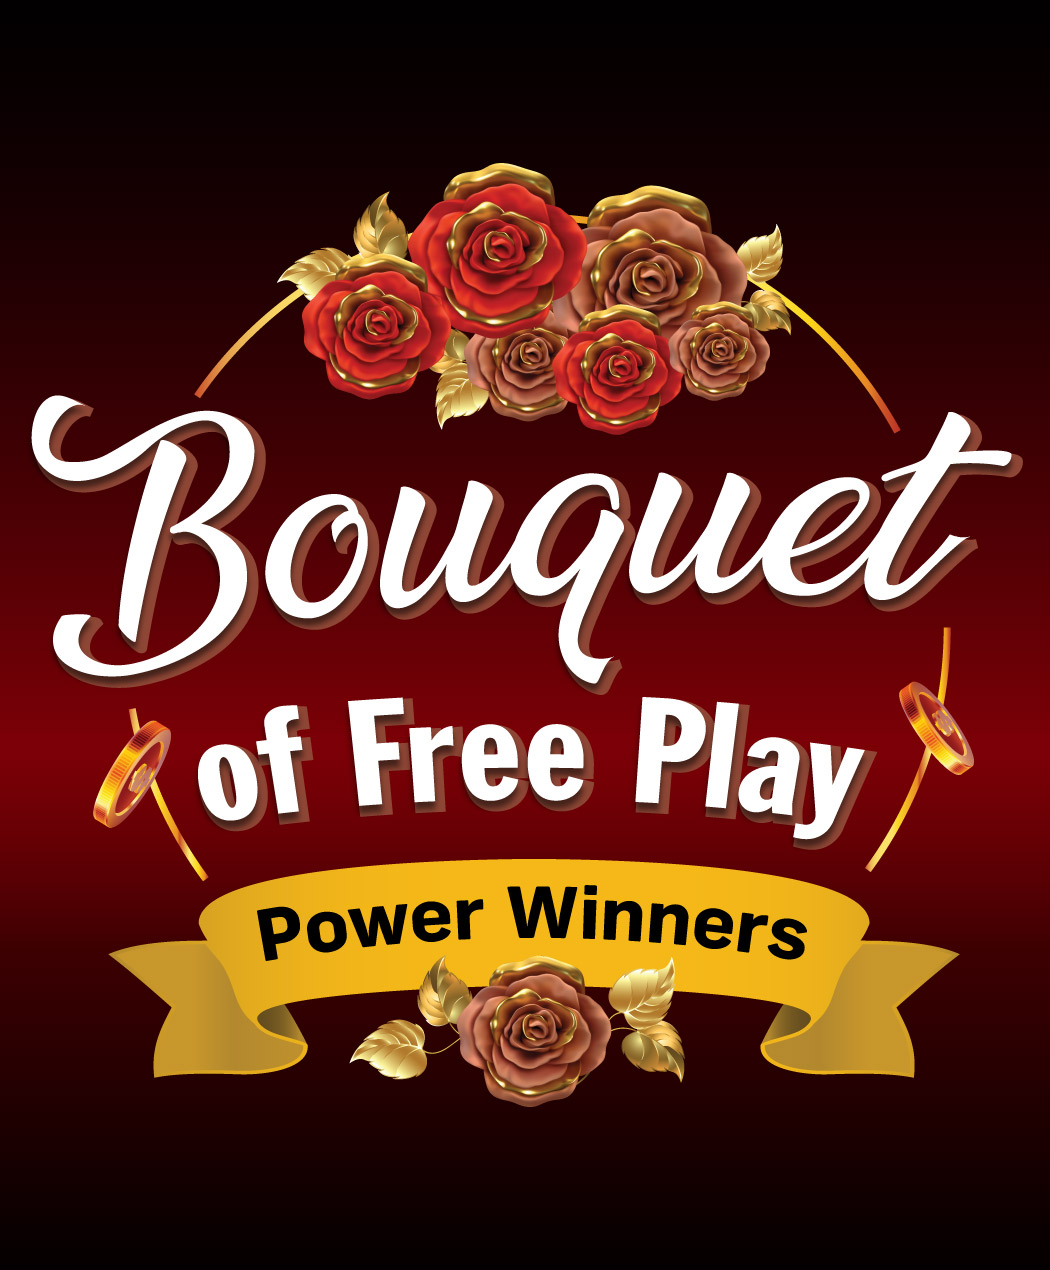 Bouquet of Free Play Power Winners